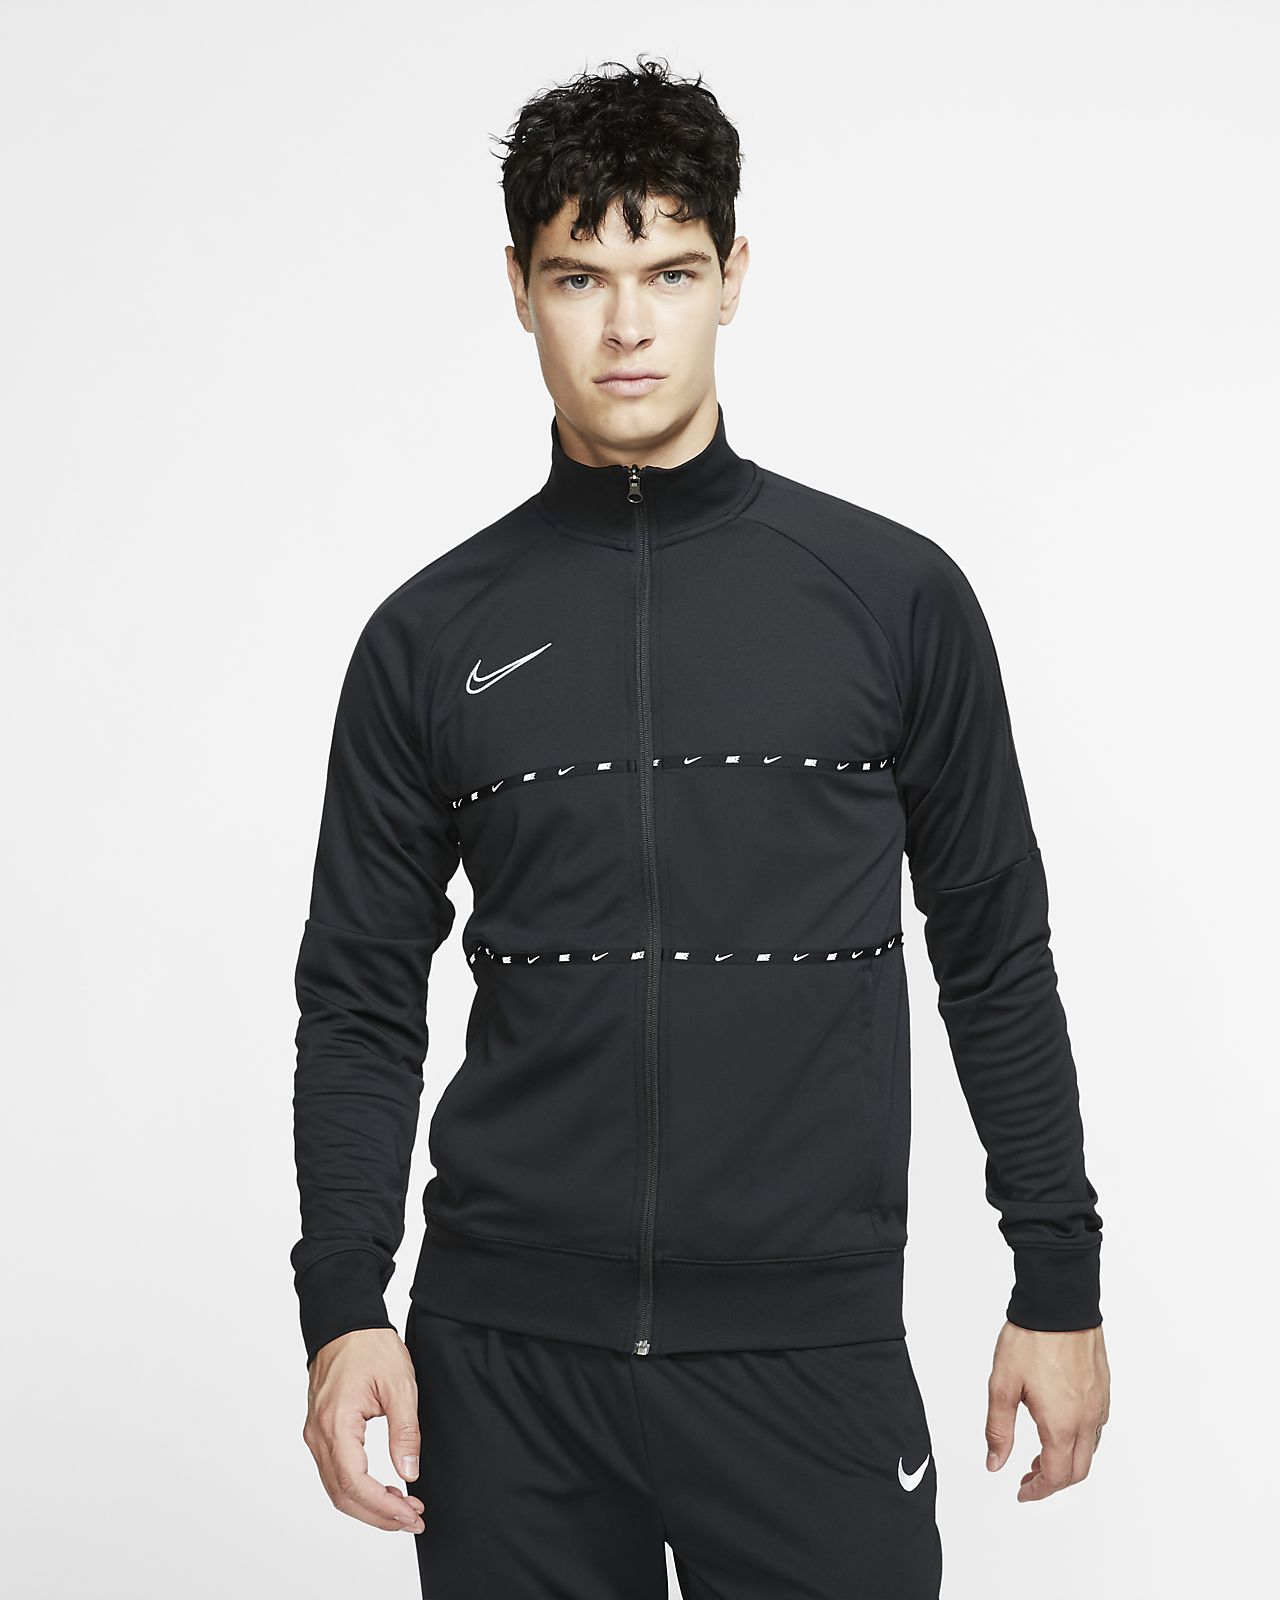 Nike Dri-FIT Academy Men's Soccer Jacket